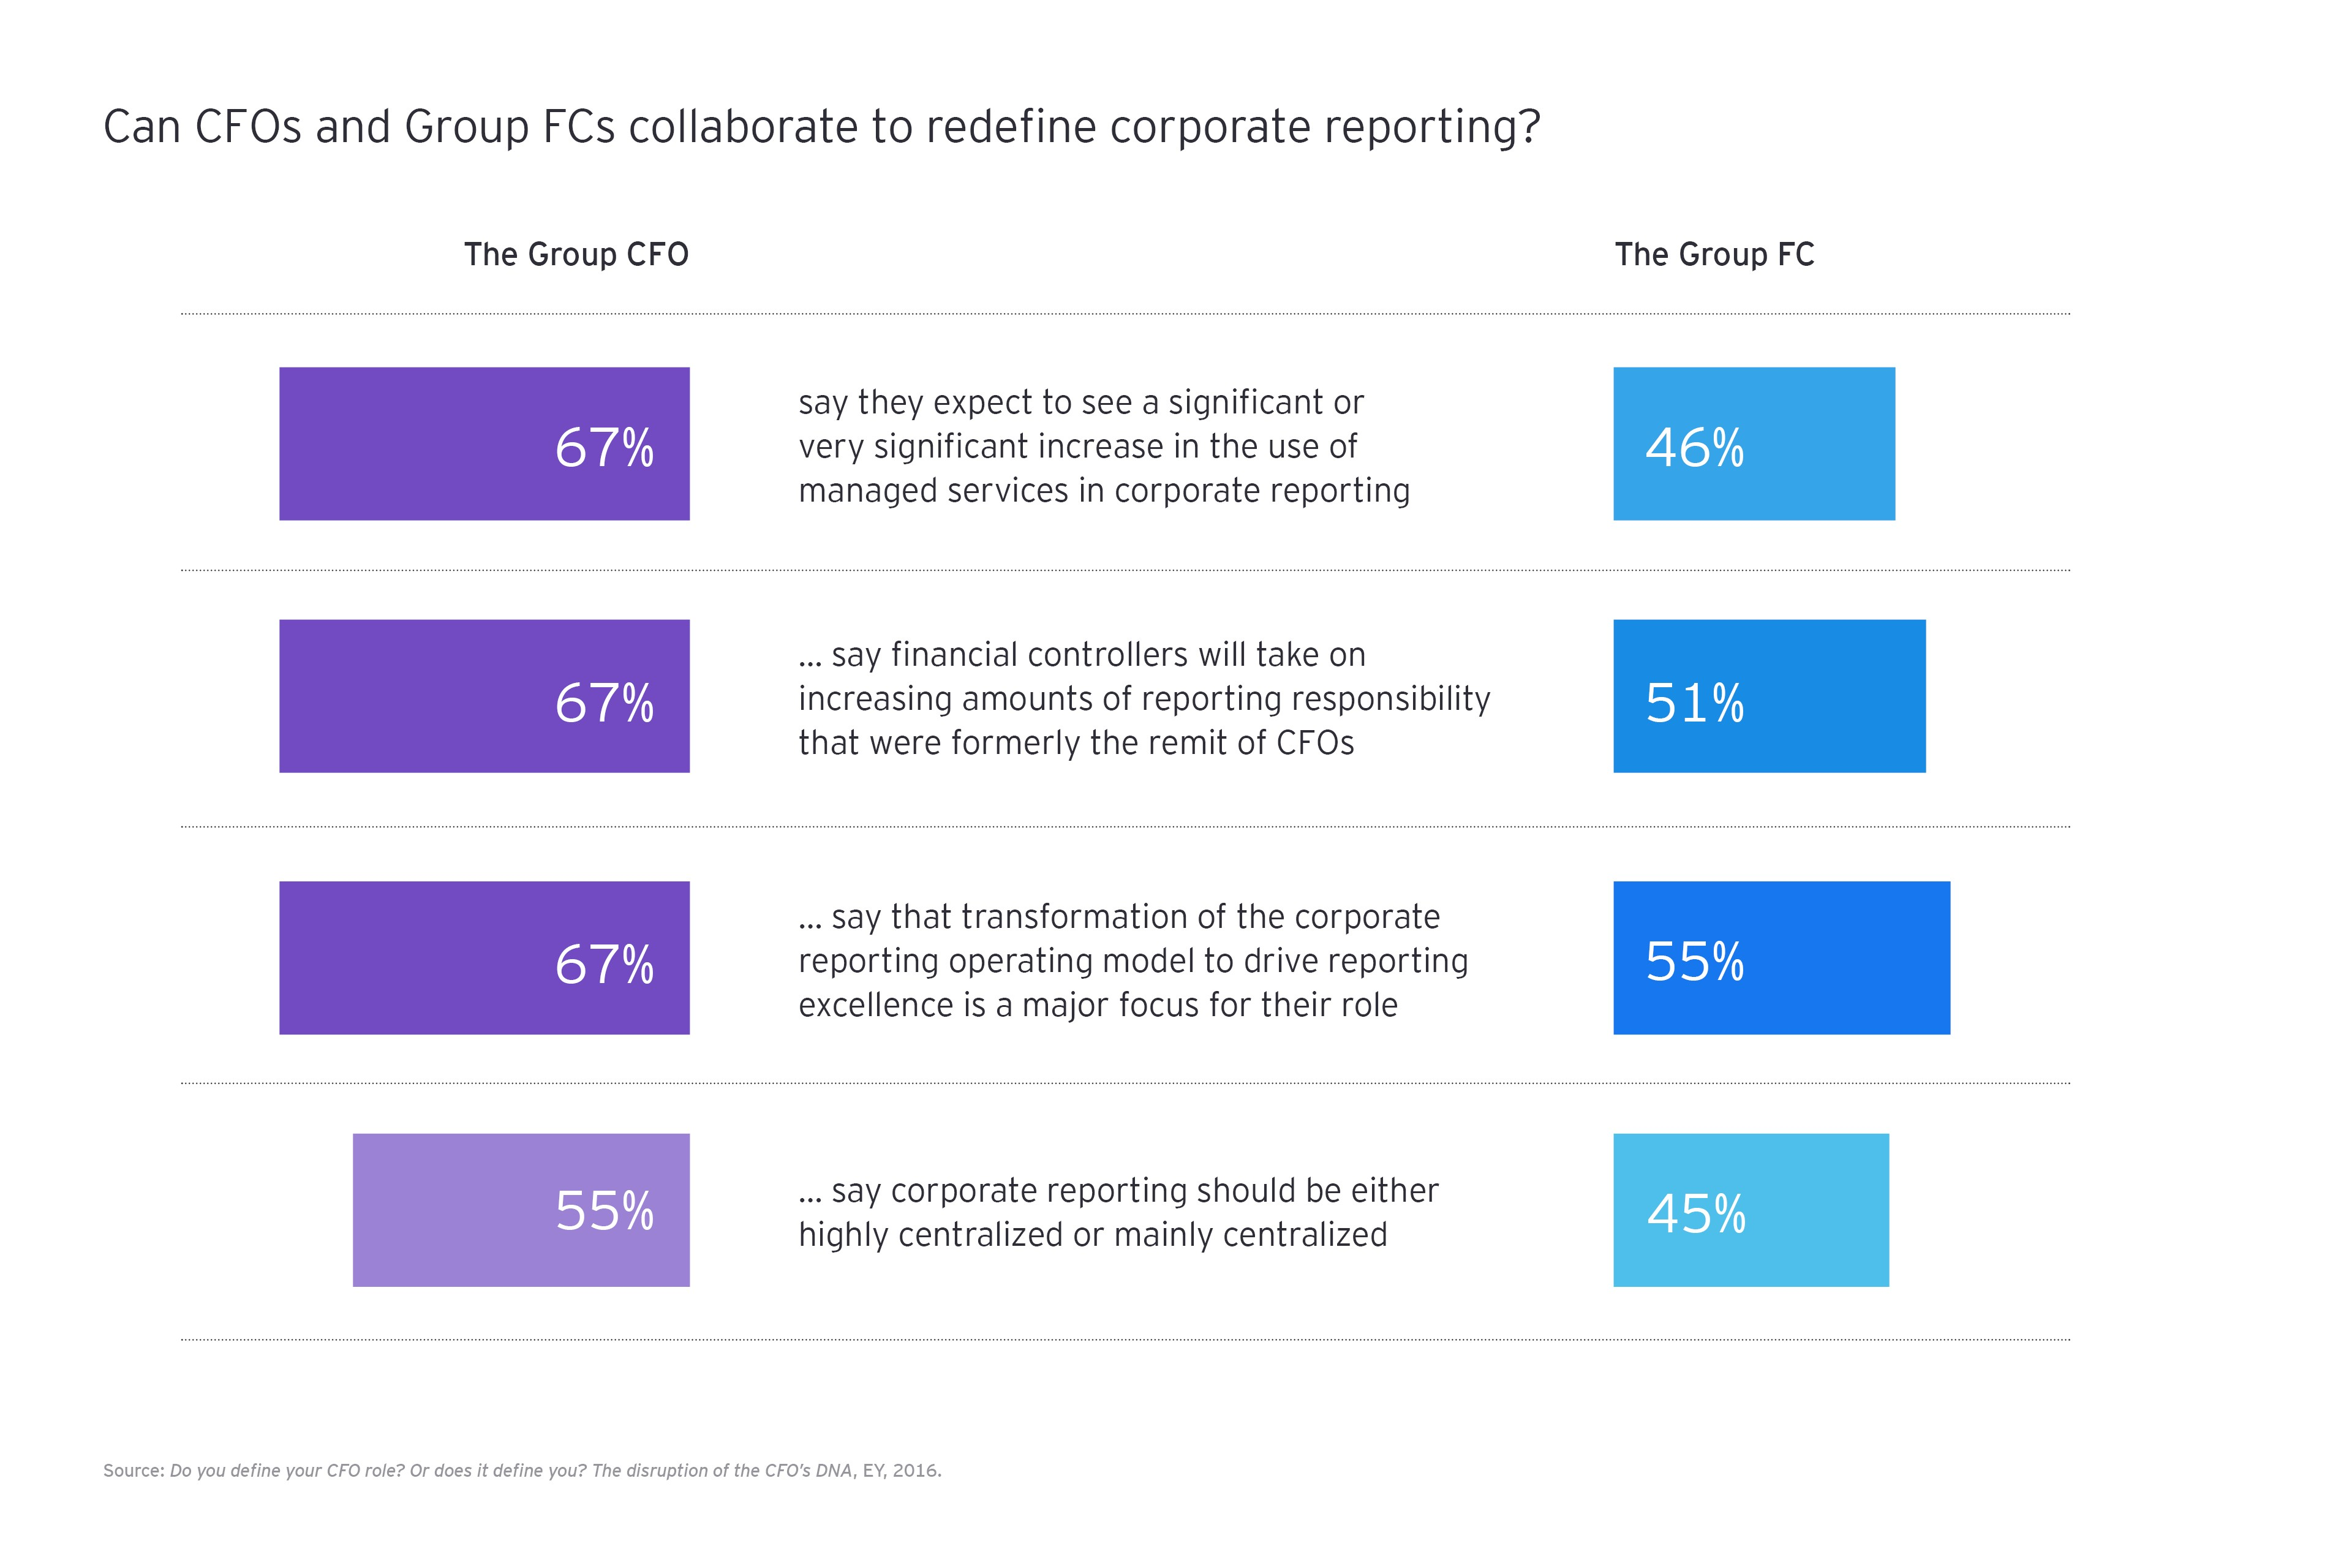 Can CFOs and Group FCs collaborate to redefine corporate reporting?